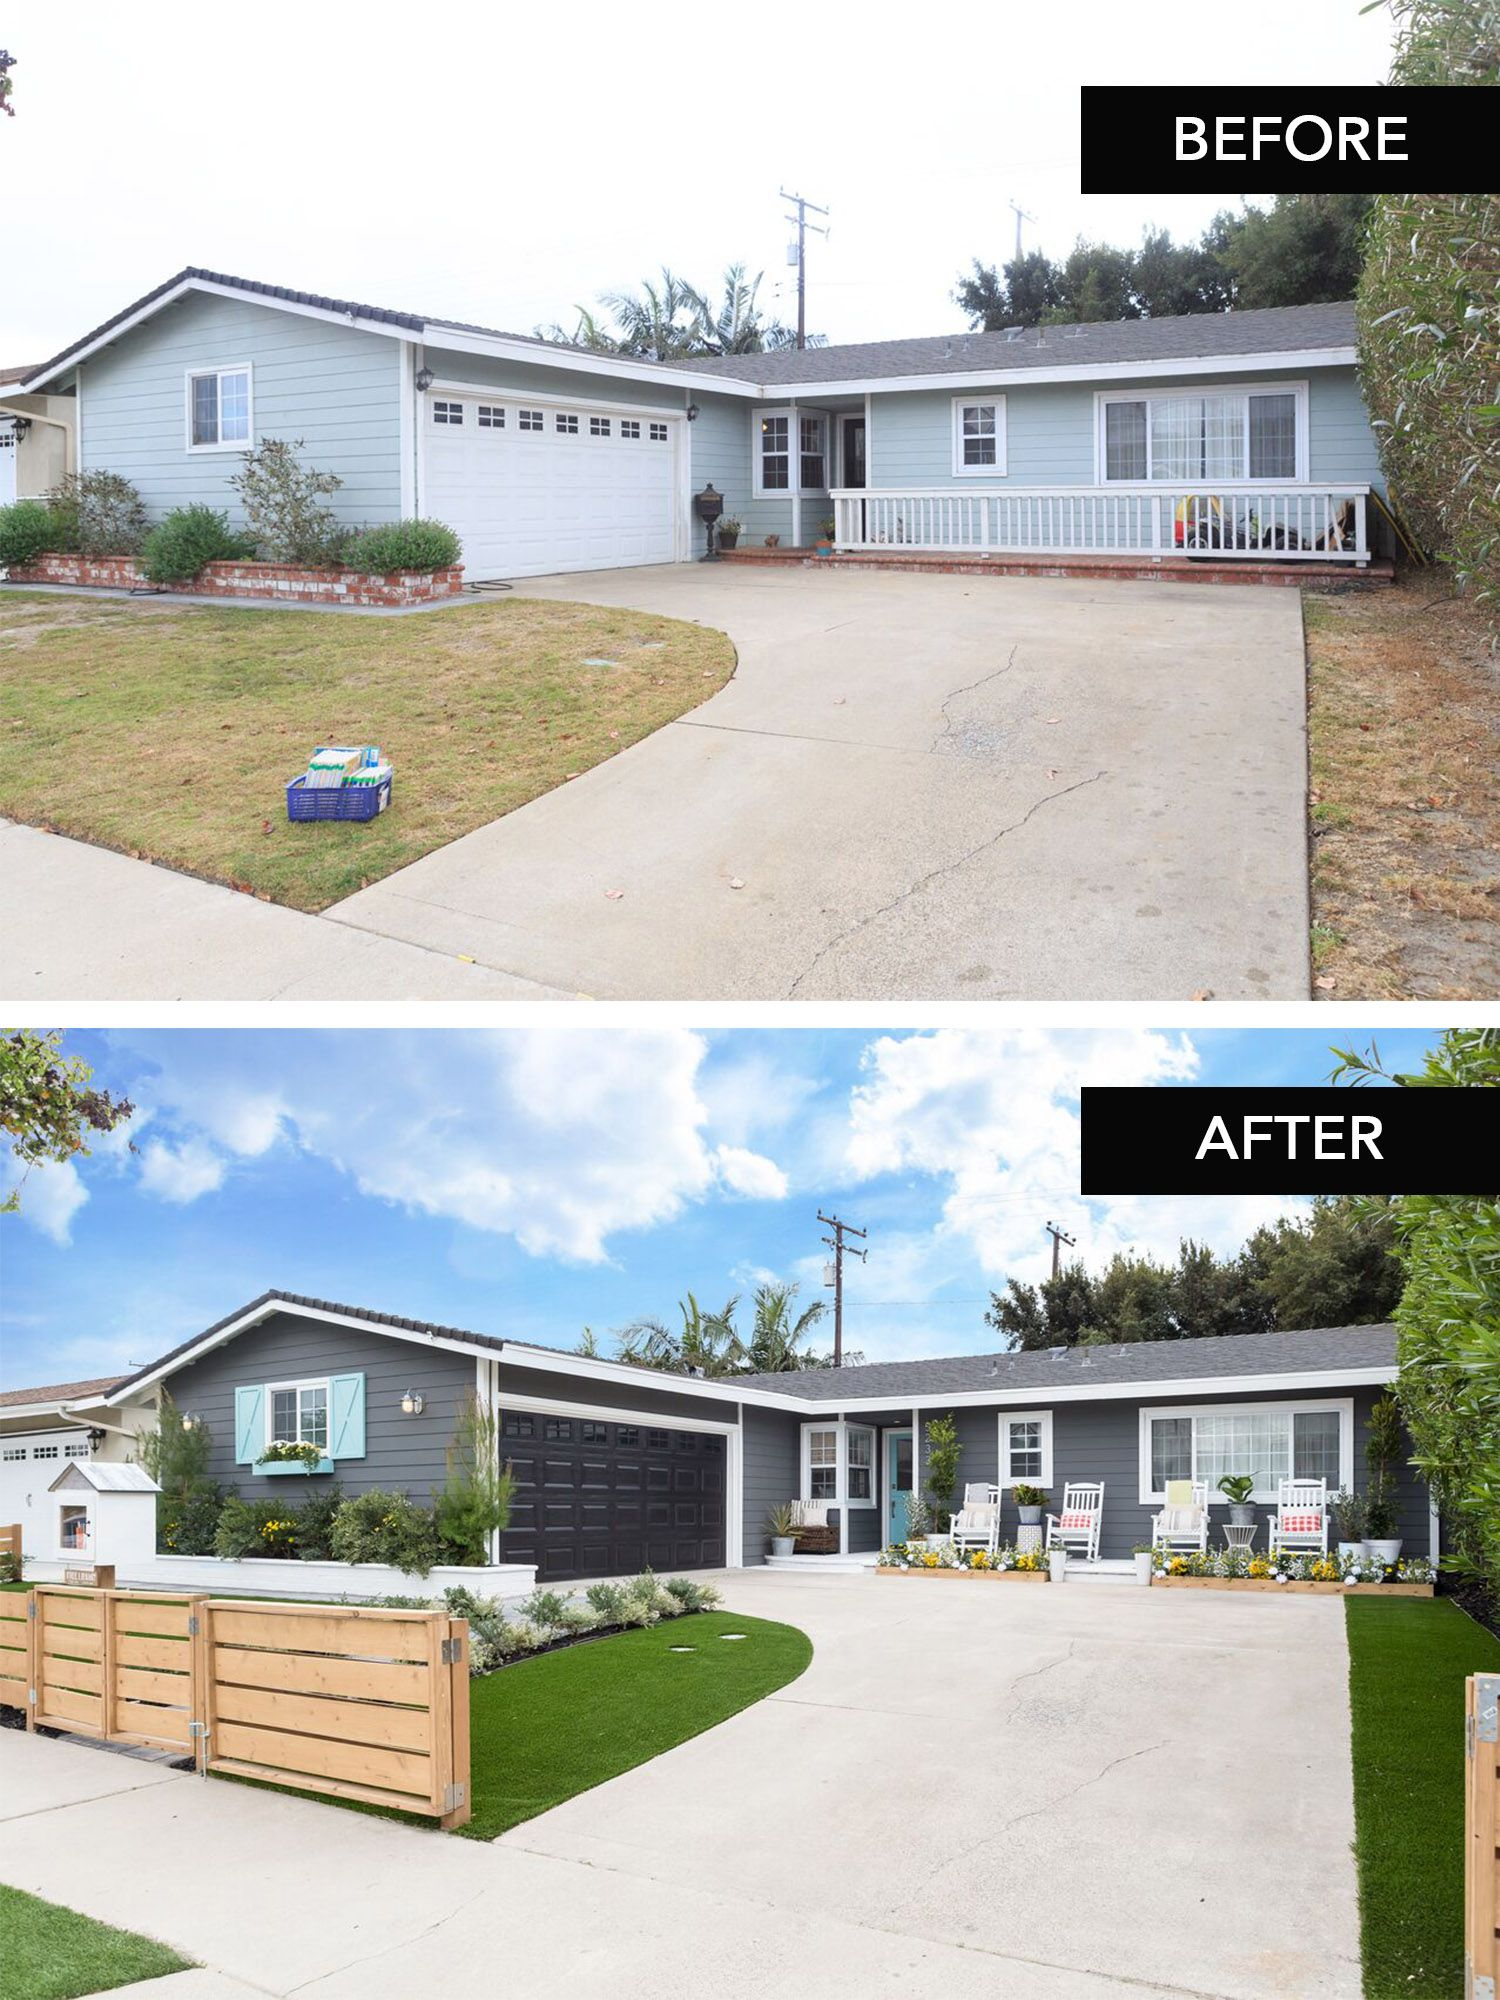 A Stunning Before After Transformation By Jasmine Roth From Hgtv S Hiddenpotential Exterior House Renovation House Exterior Home Exterior Makeover Modern backyard makeover hgtv